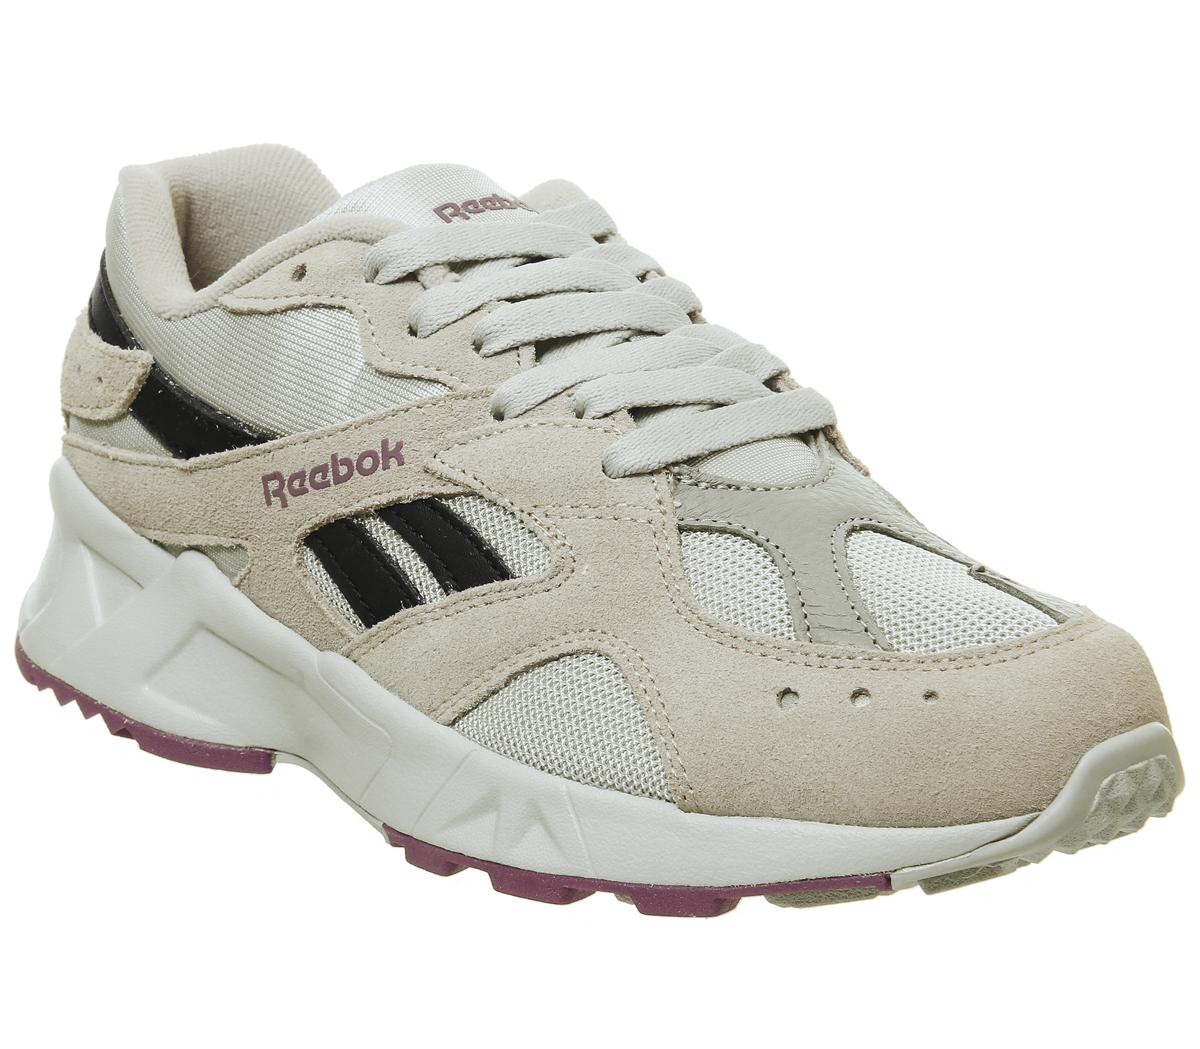 Reebok Aztrek Og Trainers Outdoor Coldgry Sand Powder Grey